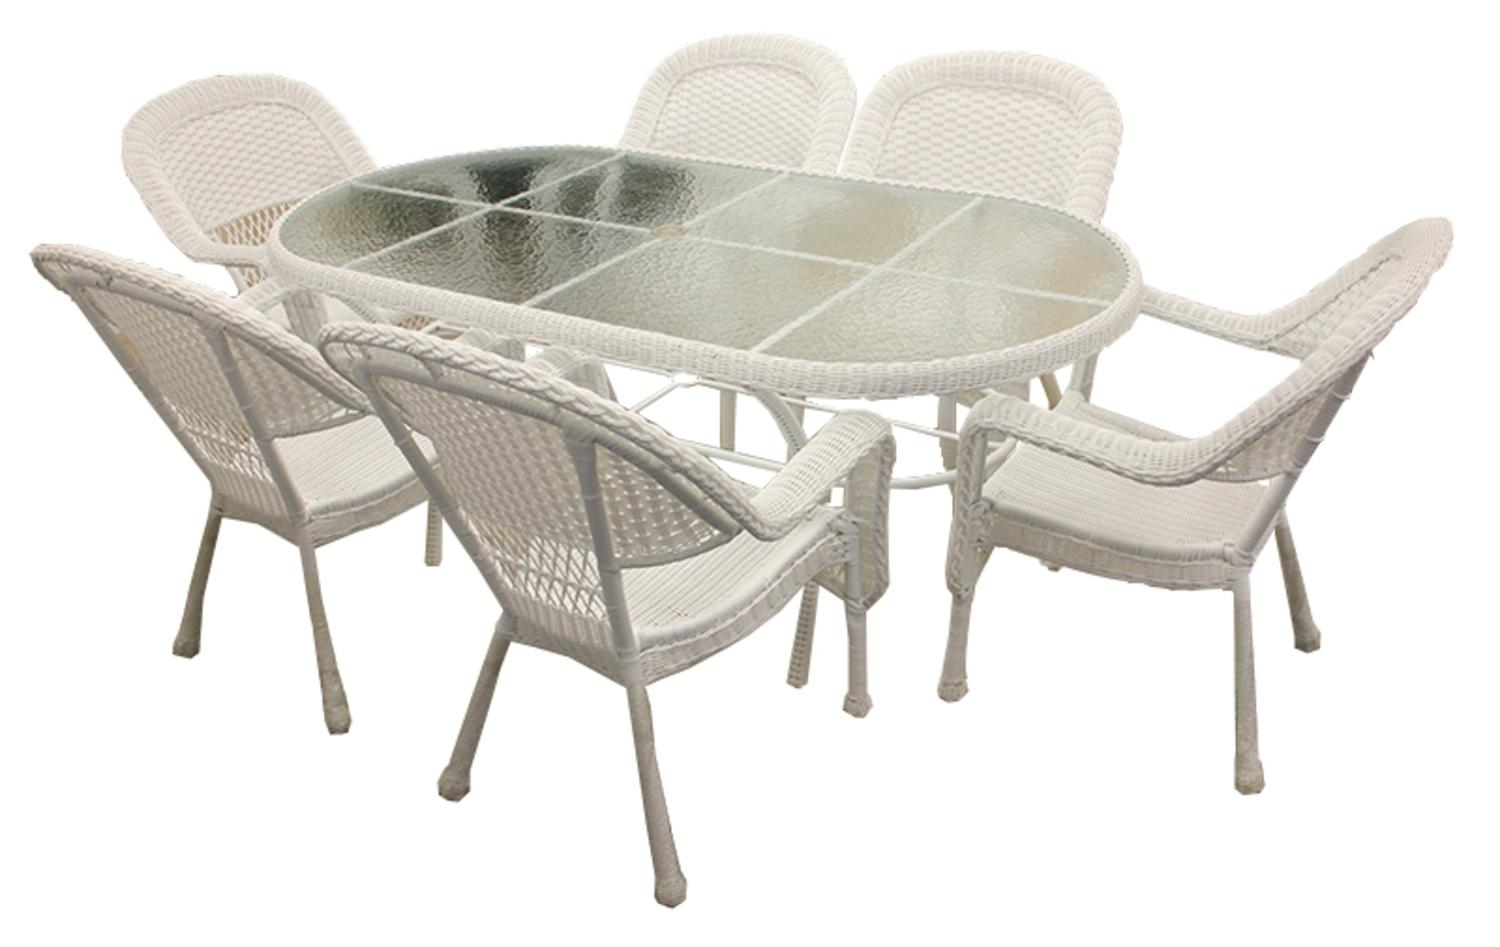 dining table set 6 chairs hanging chair for bedroom diy 7 piece white resin wicker patio and 1 walmart com